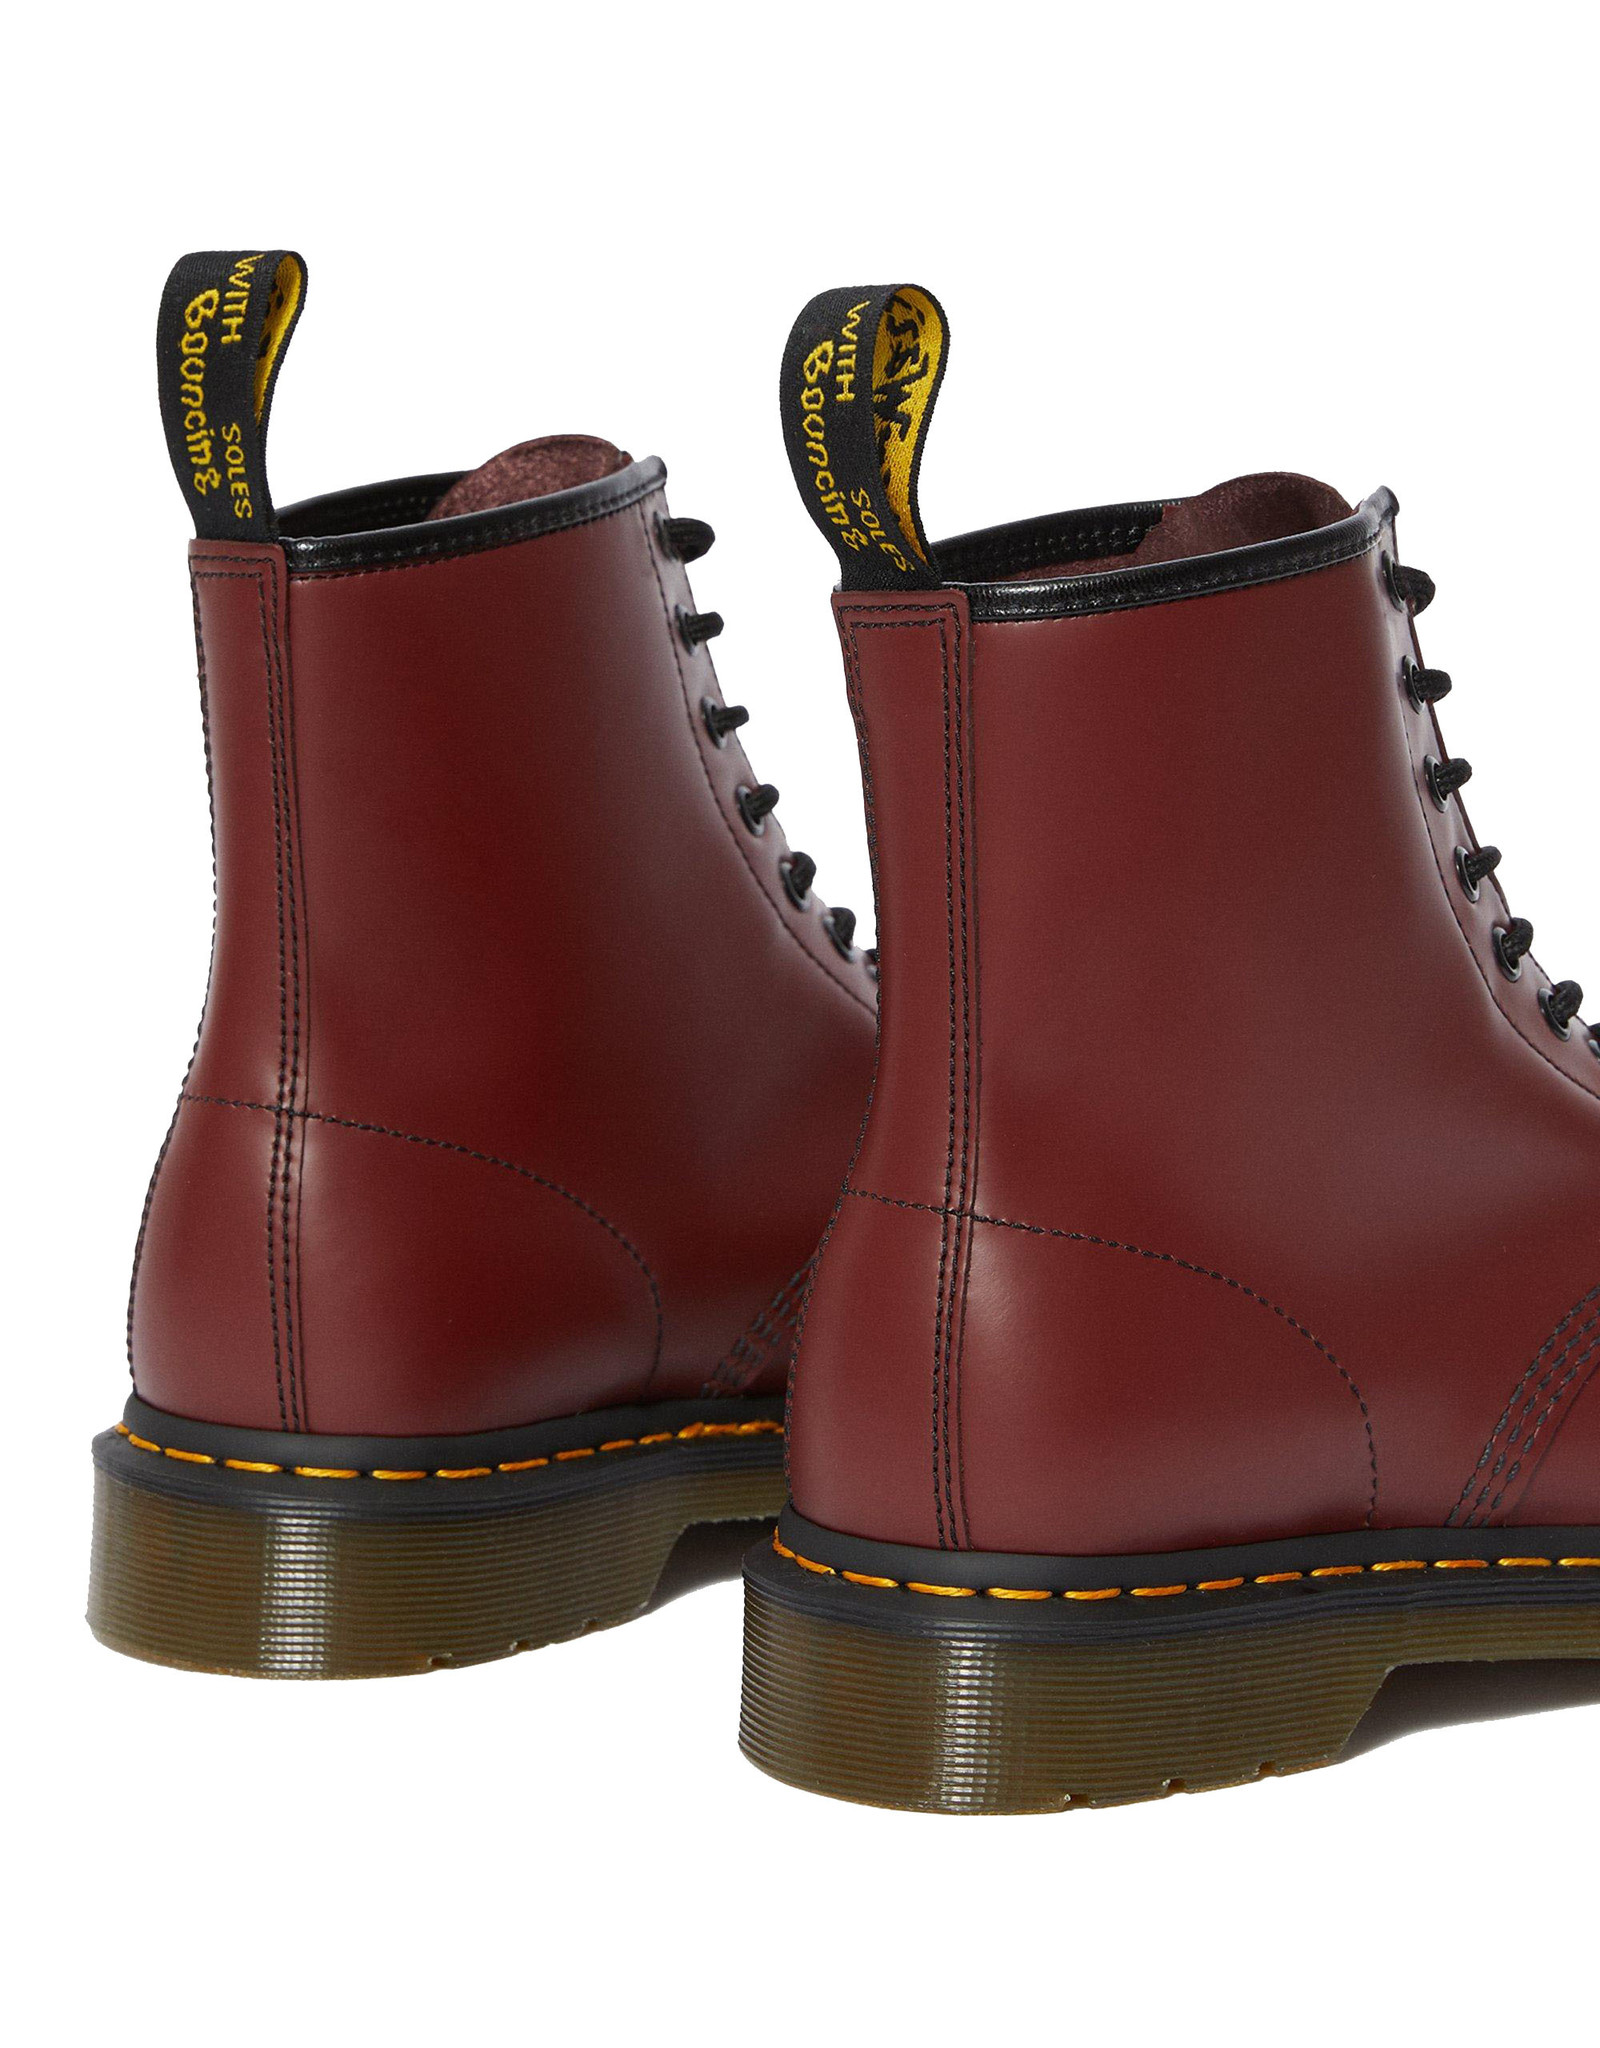 DR. MARTENS 1460W CHERRY RED SMOOTH 815CR-R11821600